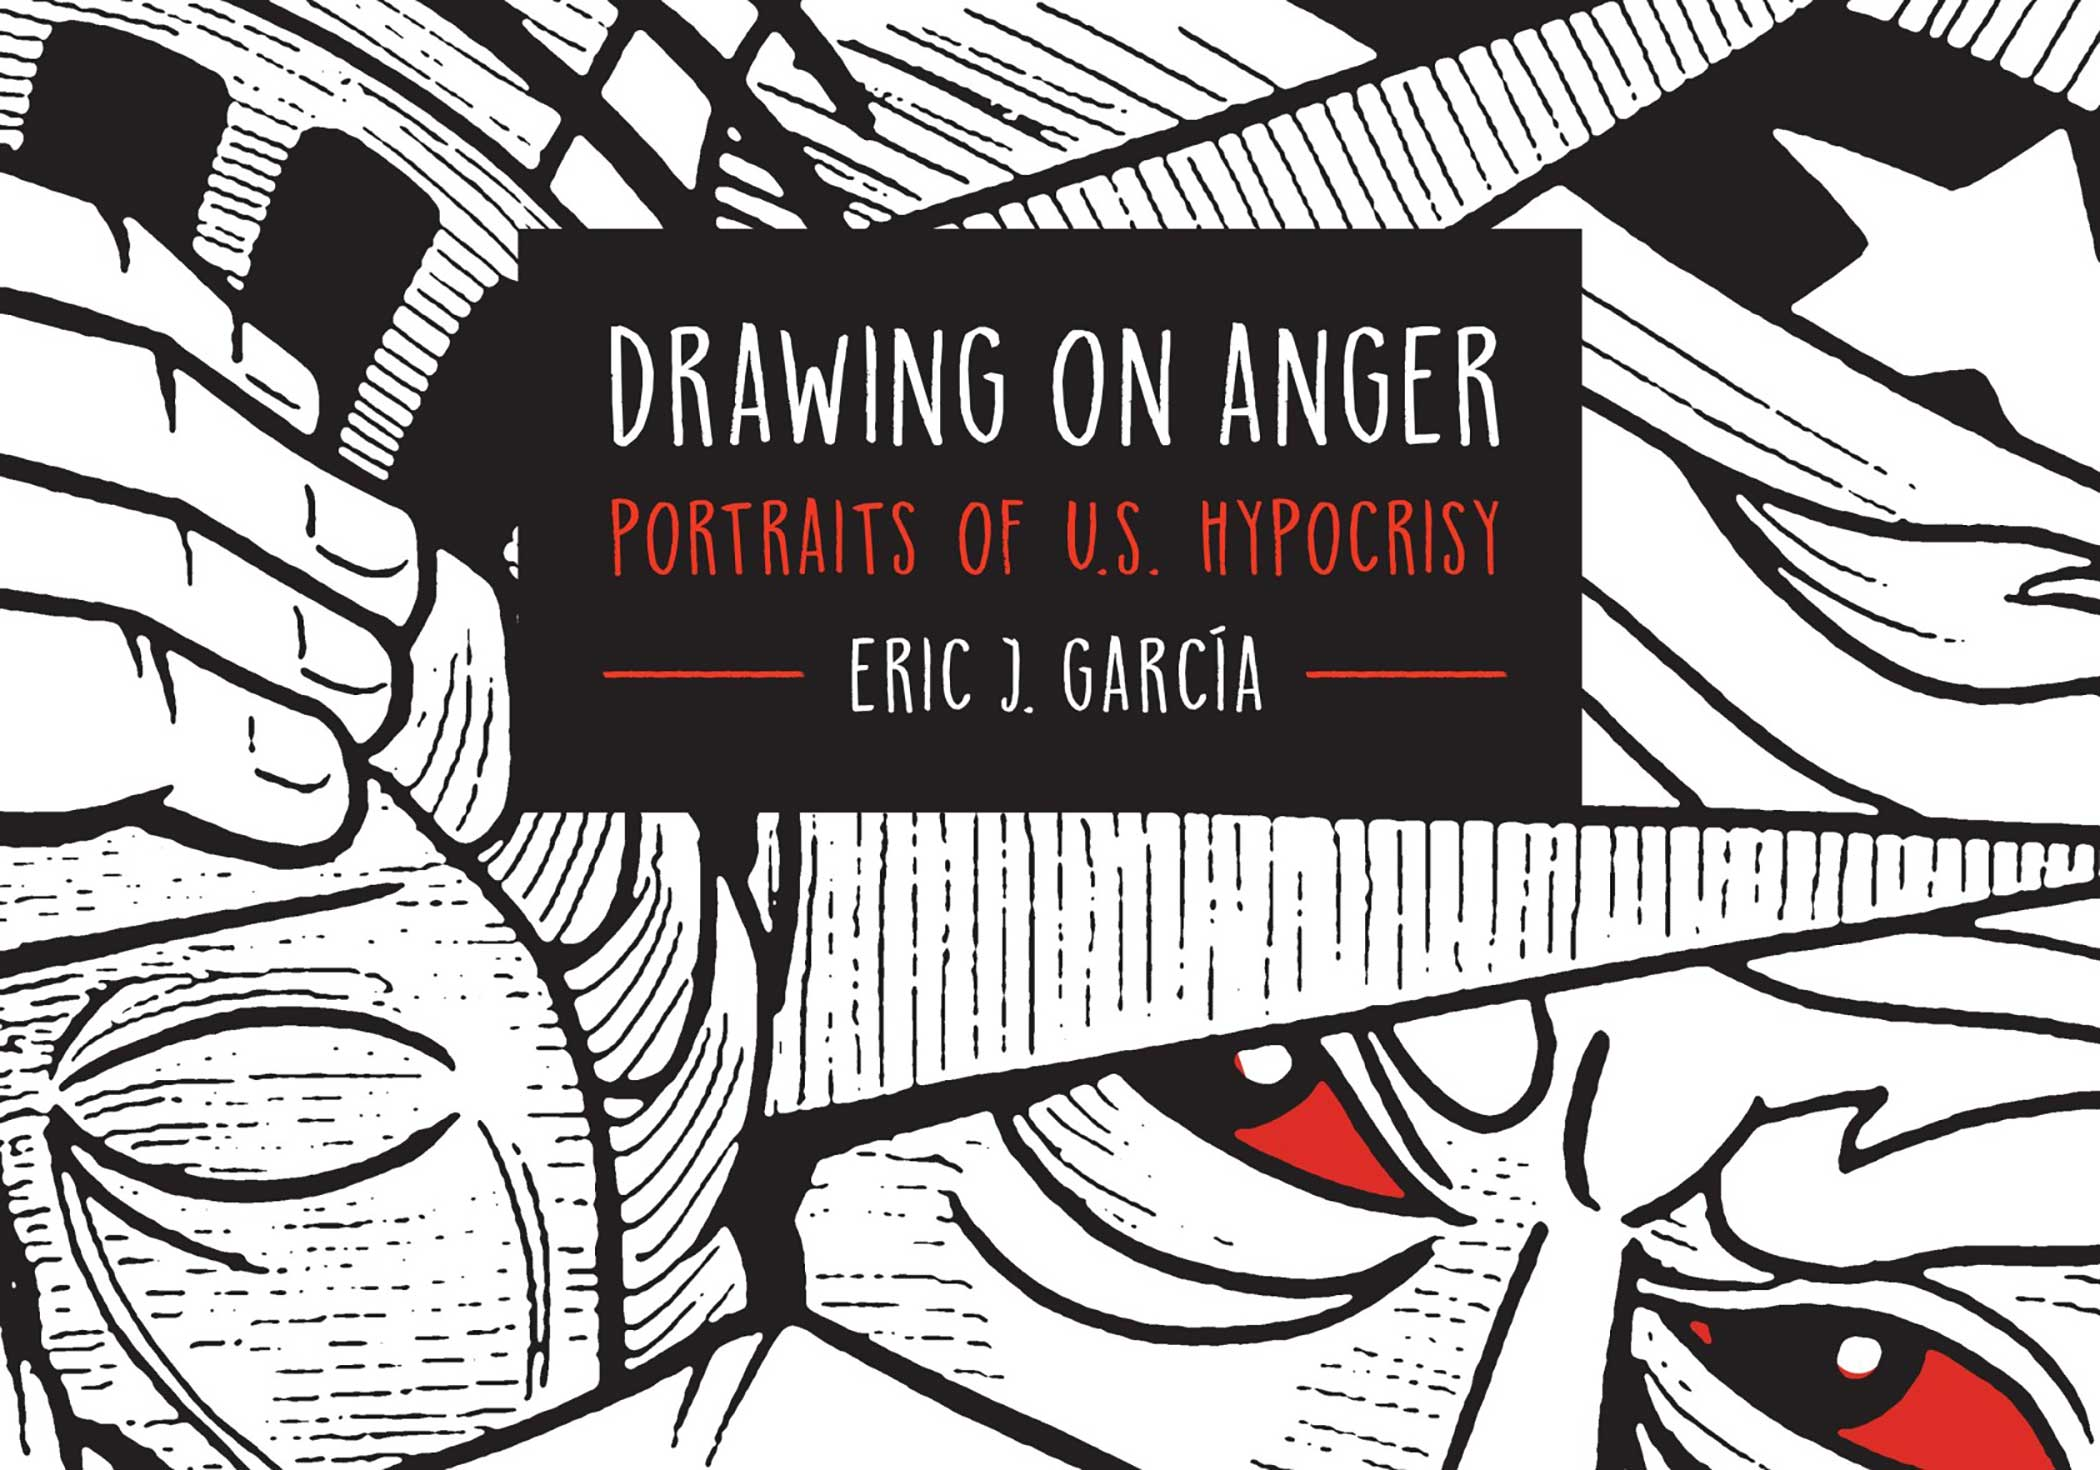 Eric J. Garcia,  Drawing on Anger: Portraits of U.S. Hypocrisy  (Cover), The Ohio State University Press, 2018.